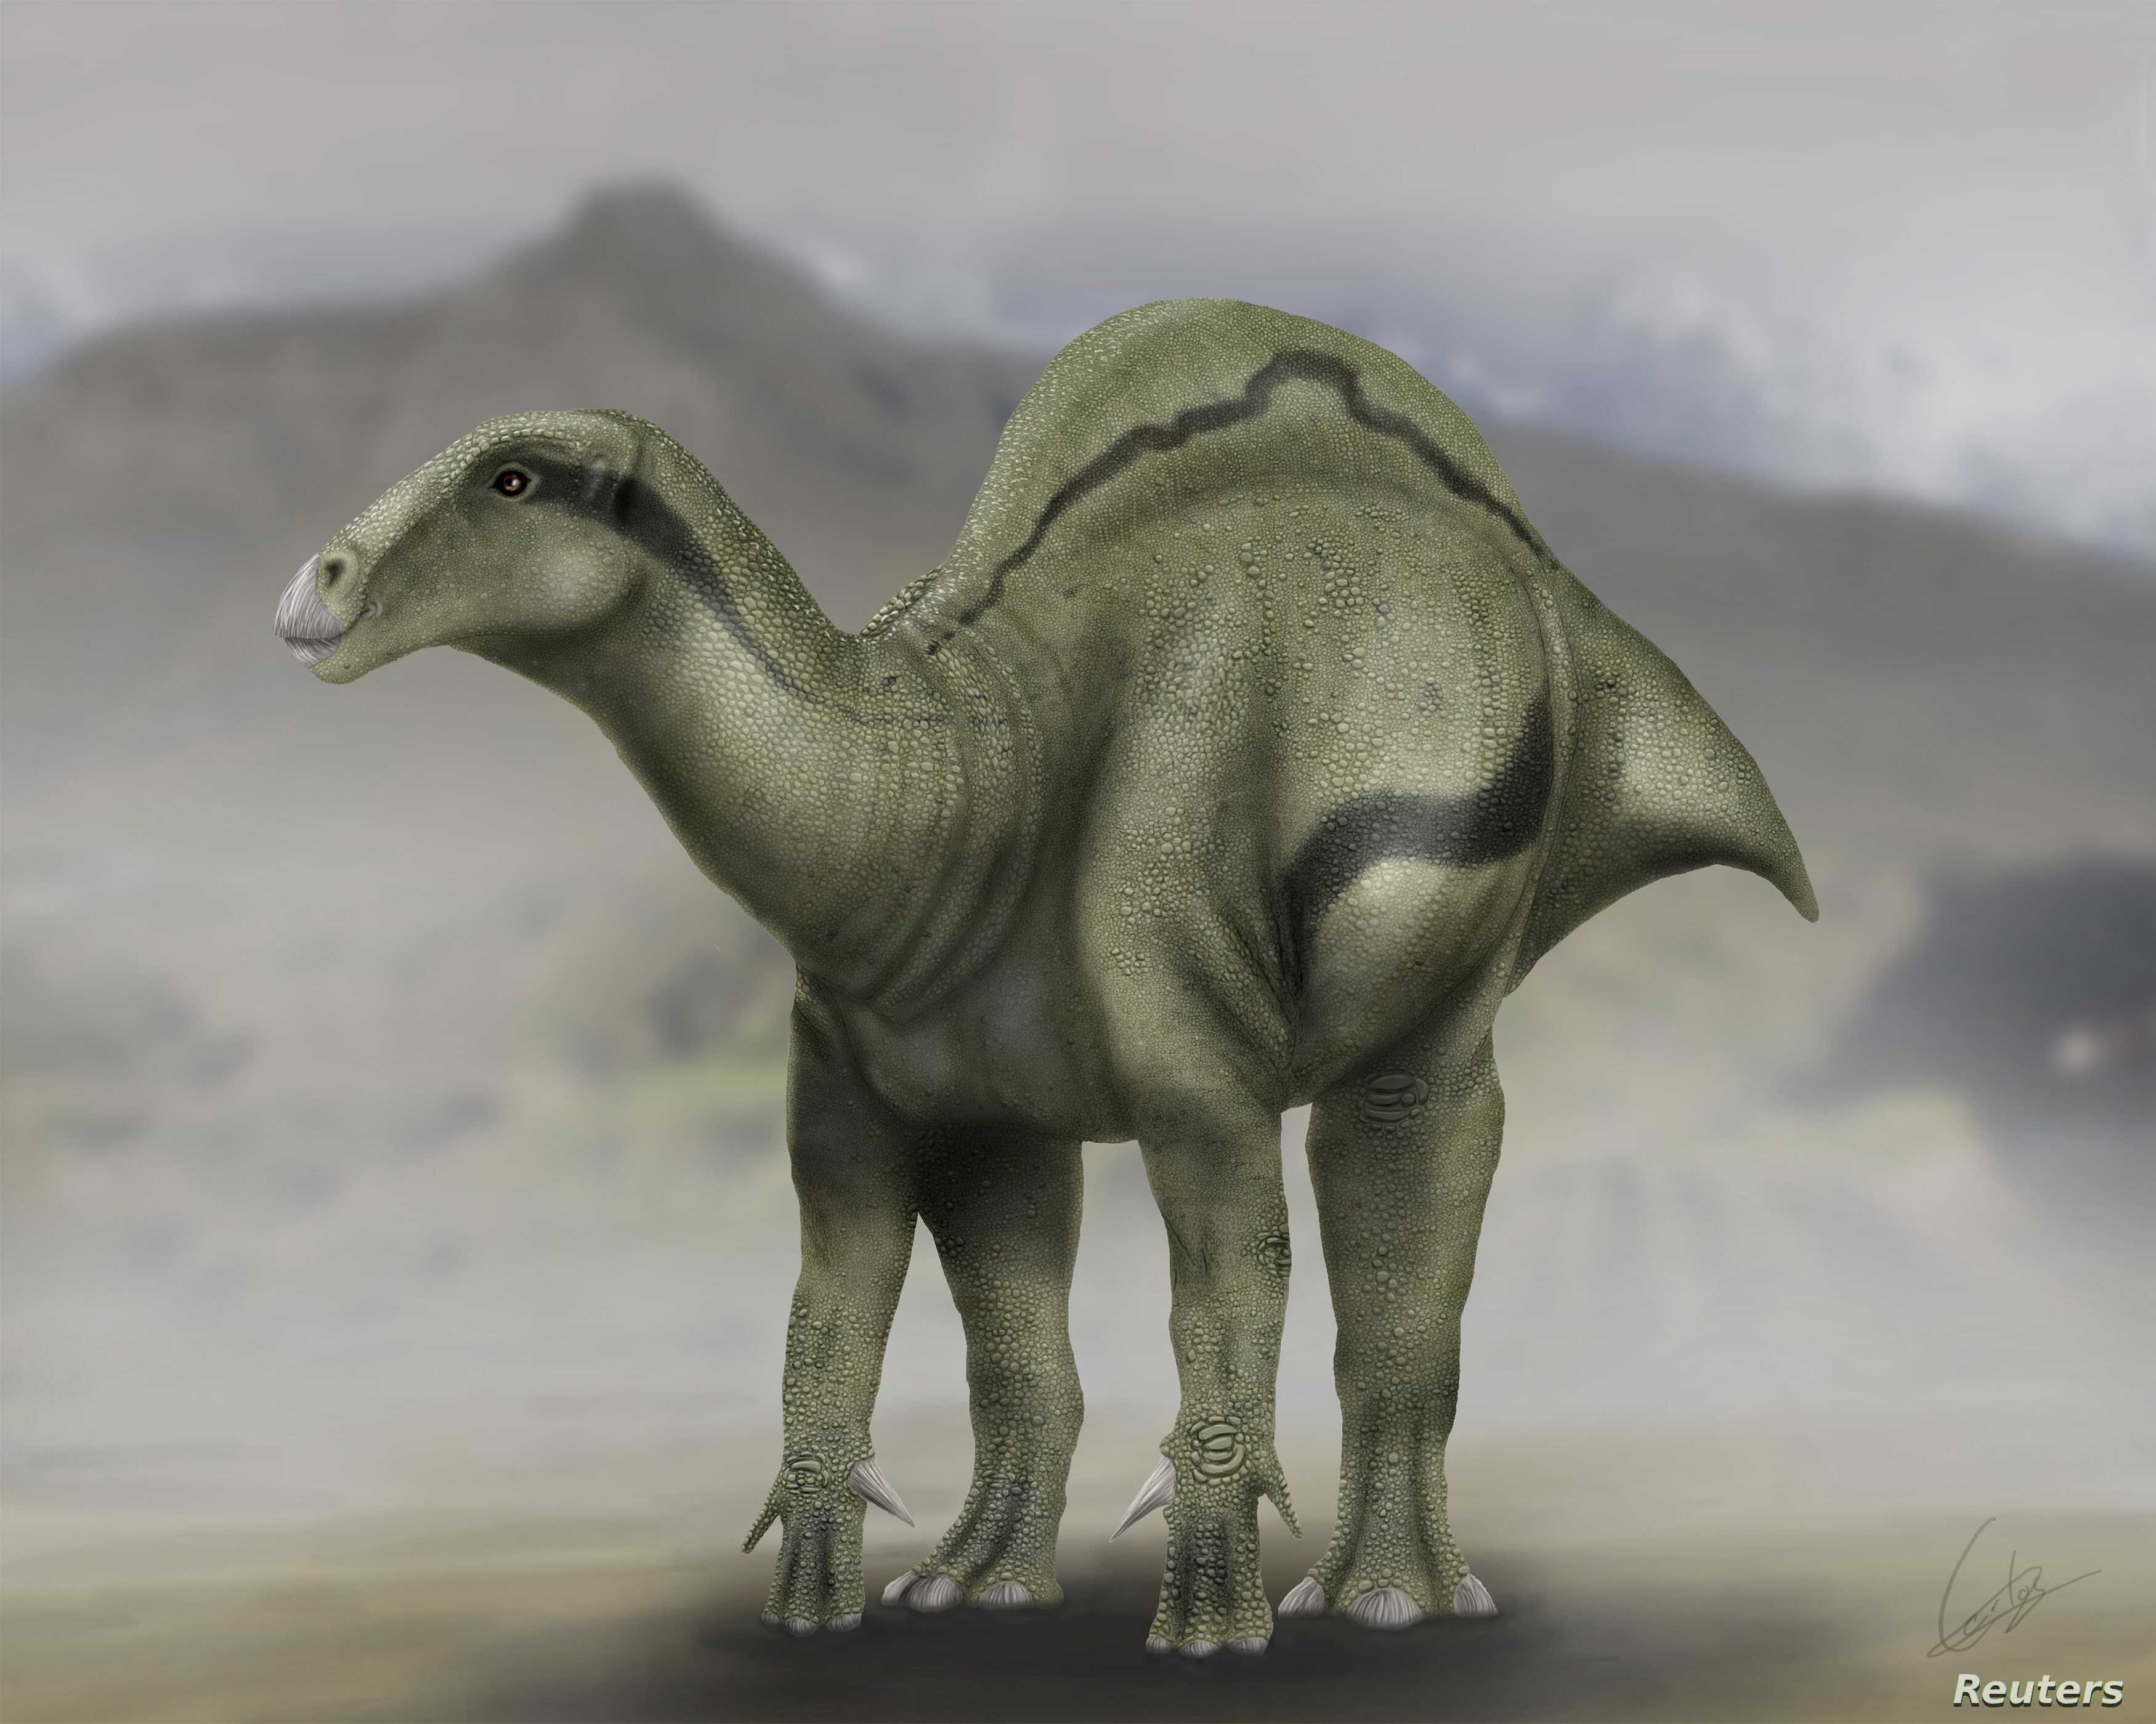 A life reconstruction of Morelladon is shown in this illustration provided by Carlos de Miguel Chaves.